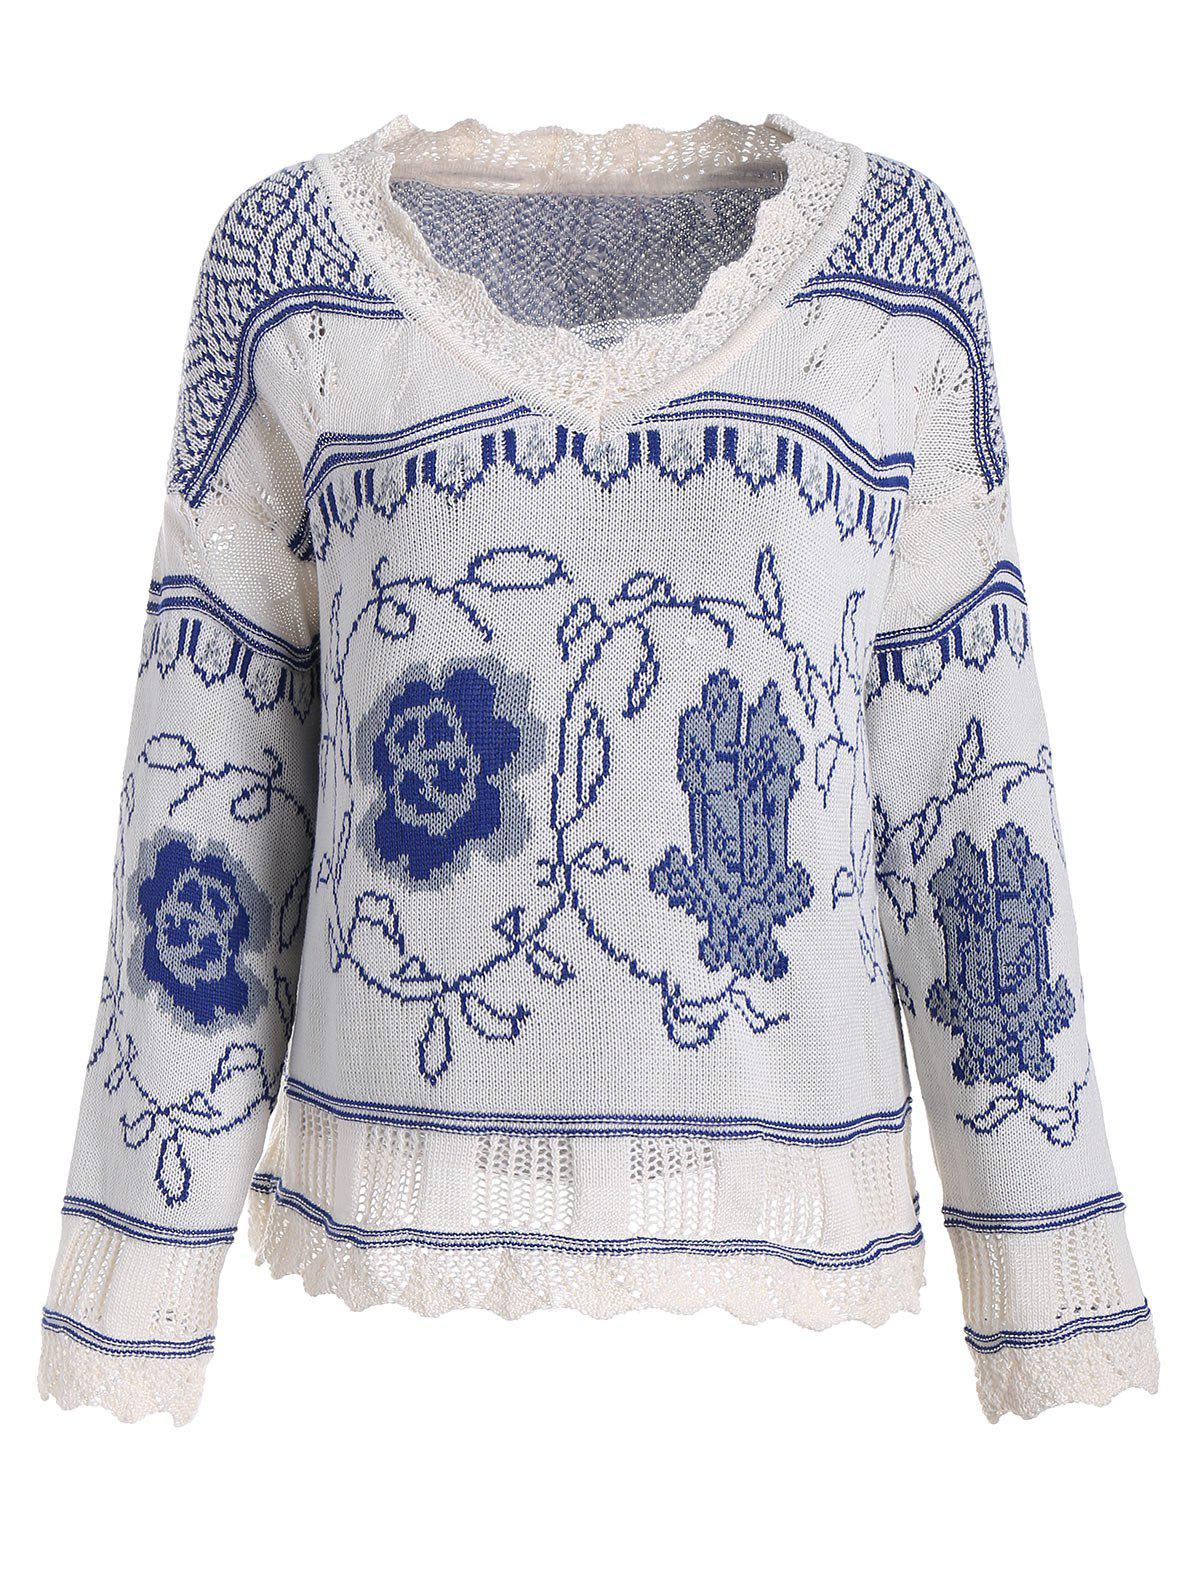 V Neck Plus Size Knit Graphic Sweater ny collection new blue women s size large l wide knit v neck sweater $60 083